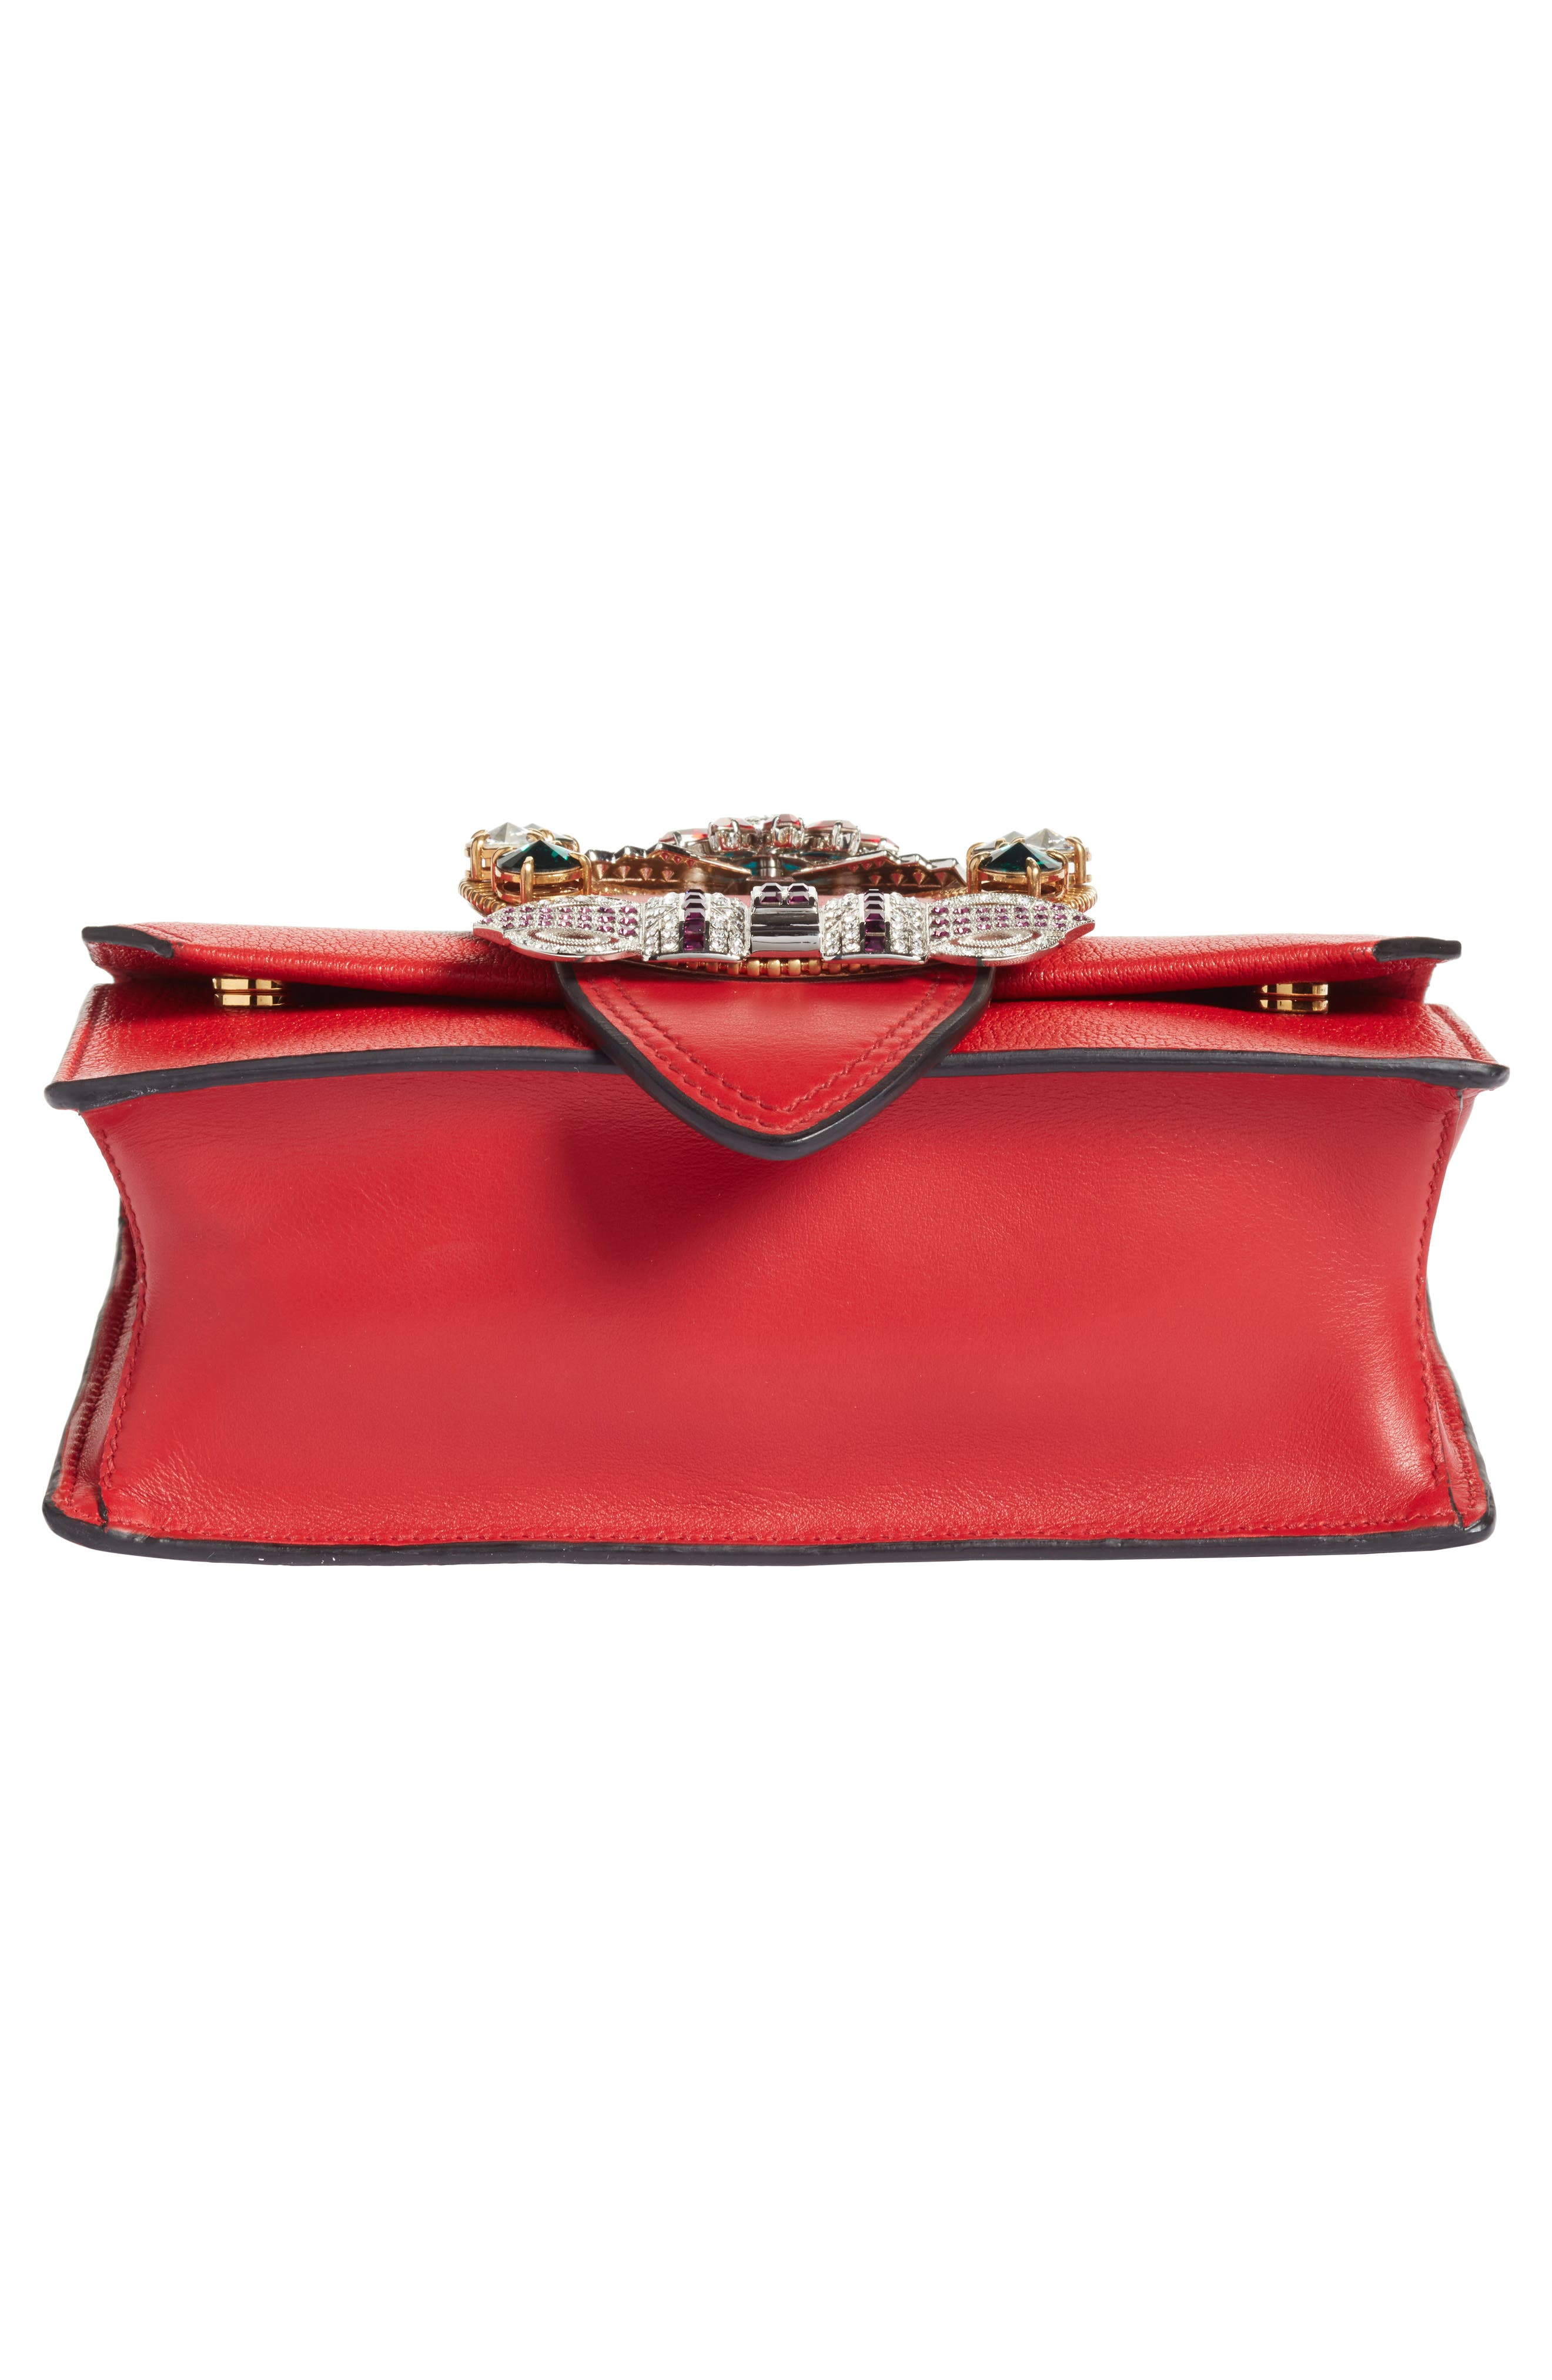 Madras Crystal Embellished Leather Shoulder Bag,                             Alternate thumbnail 6, color,                             FUOCO